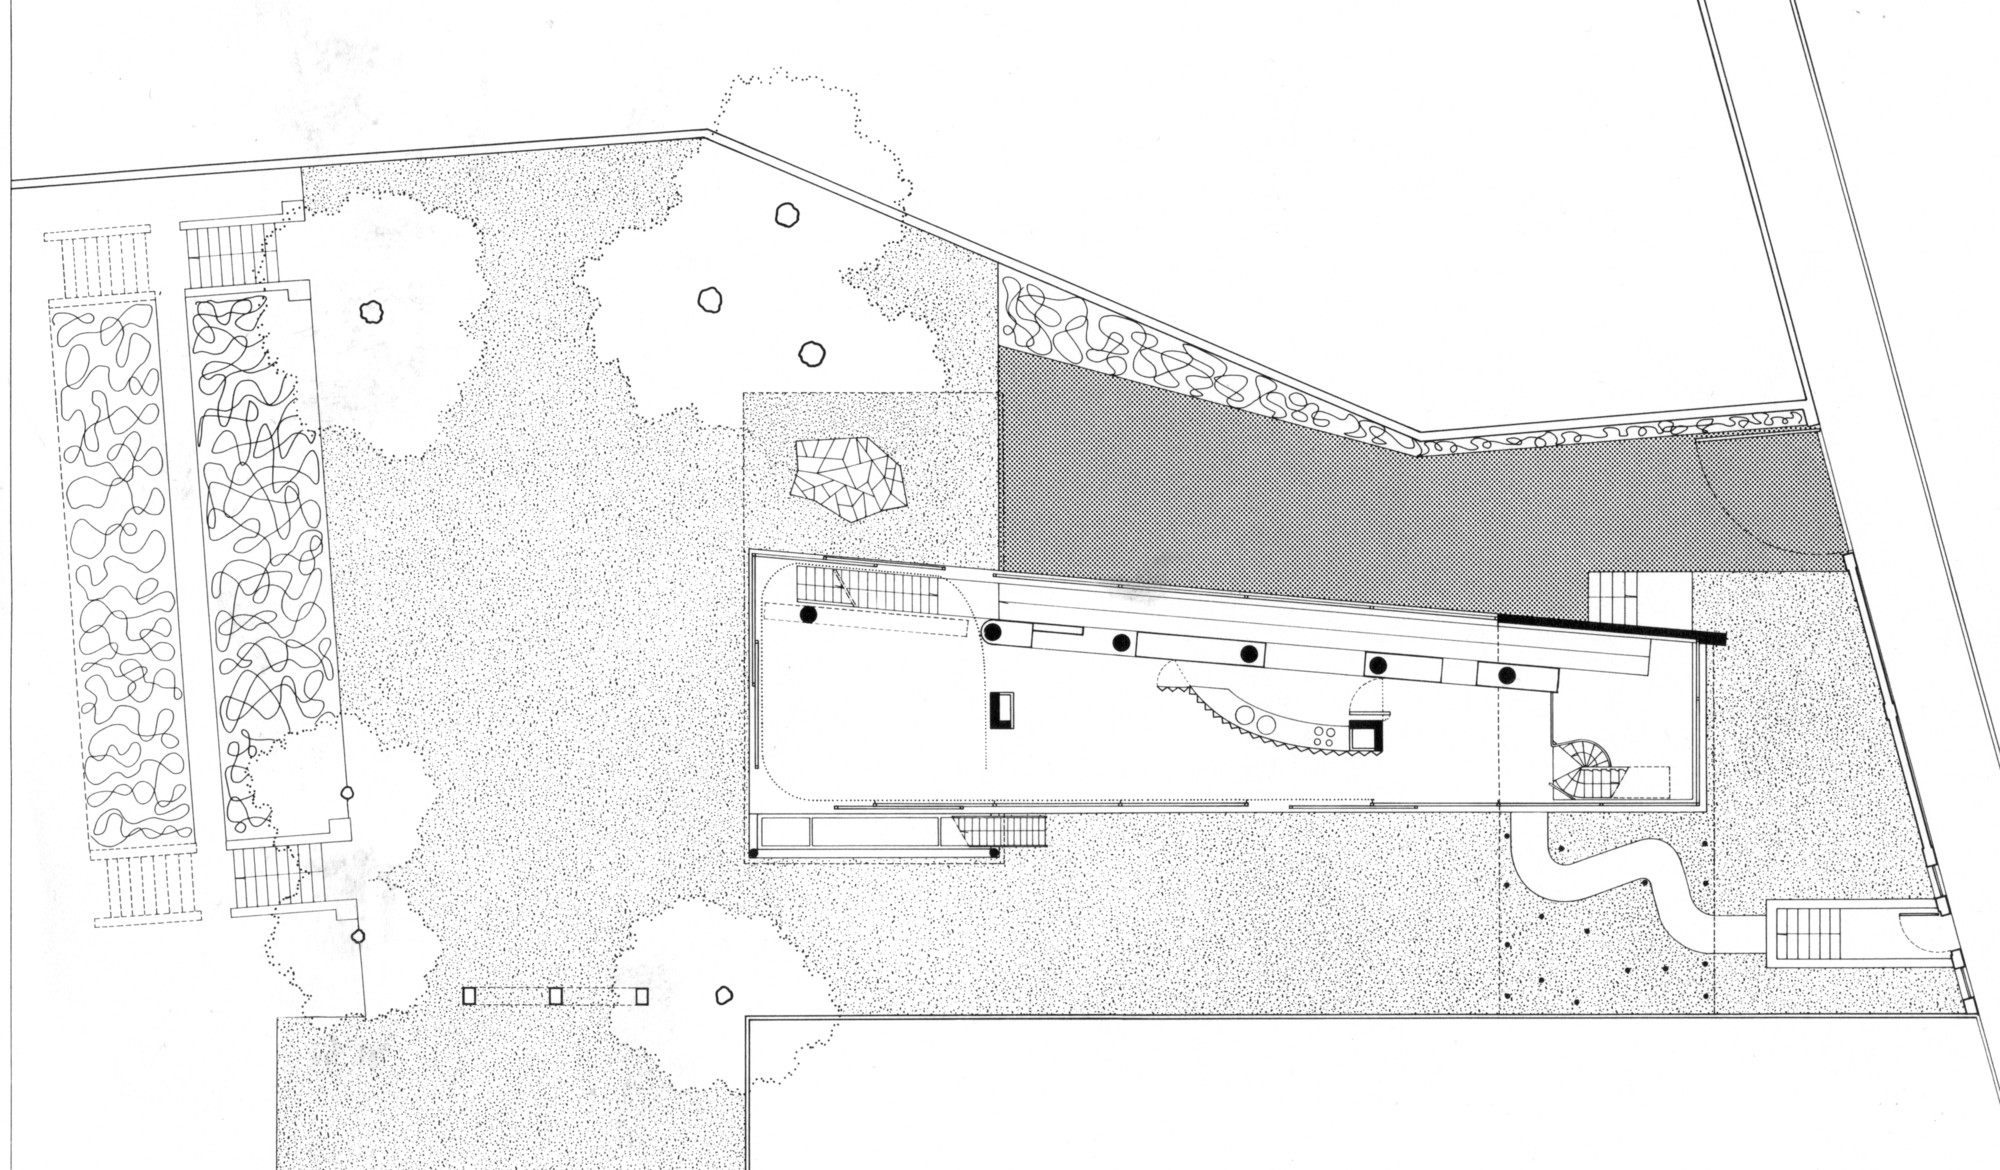 Gallery of ad classics villa dall 39 ava oma 12 for Adhouse plans